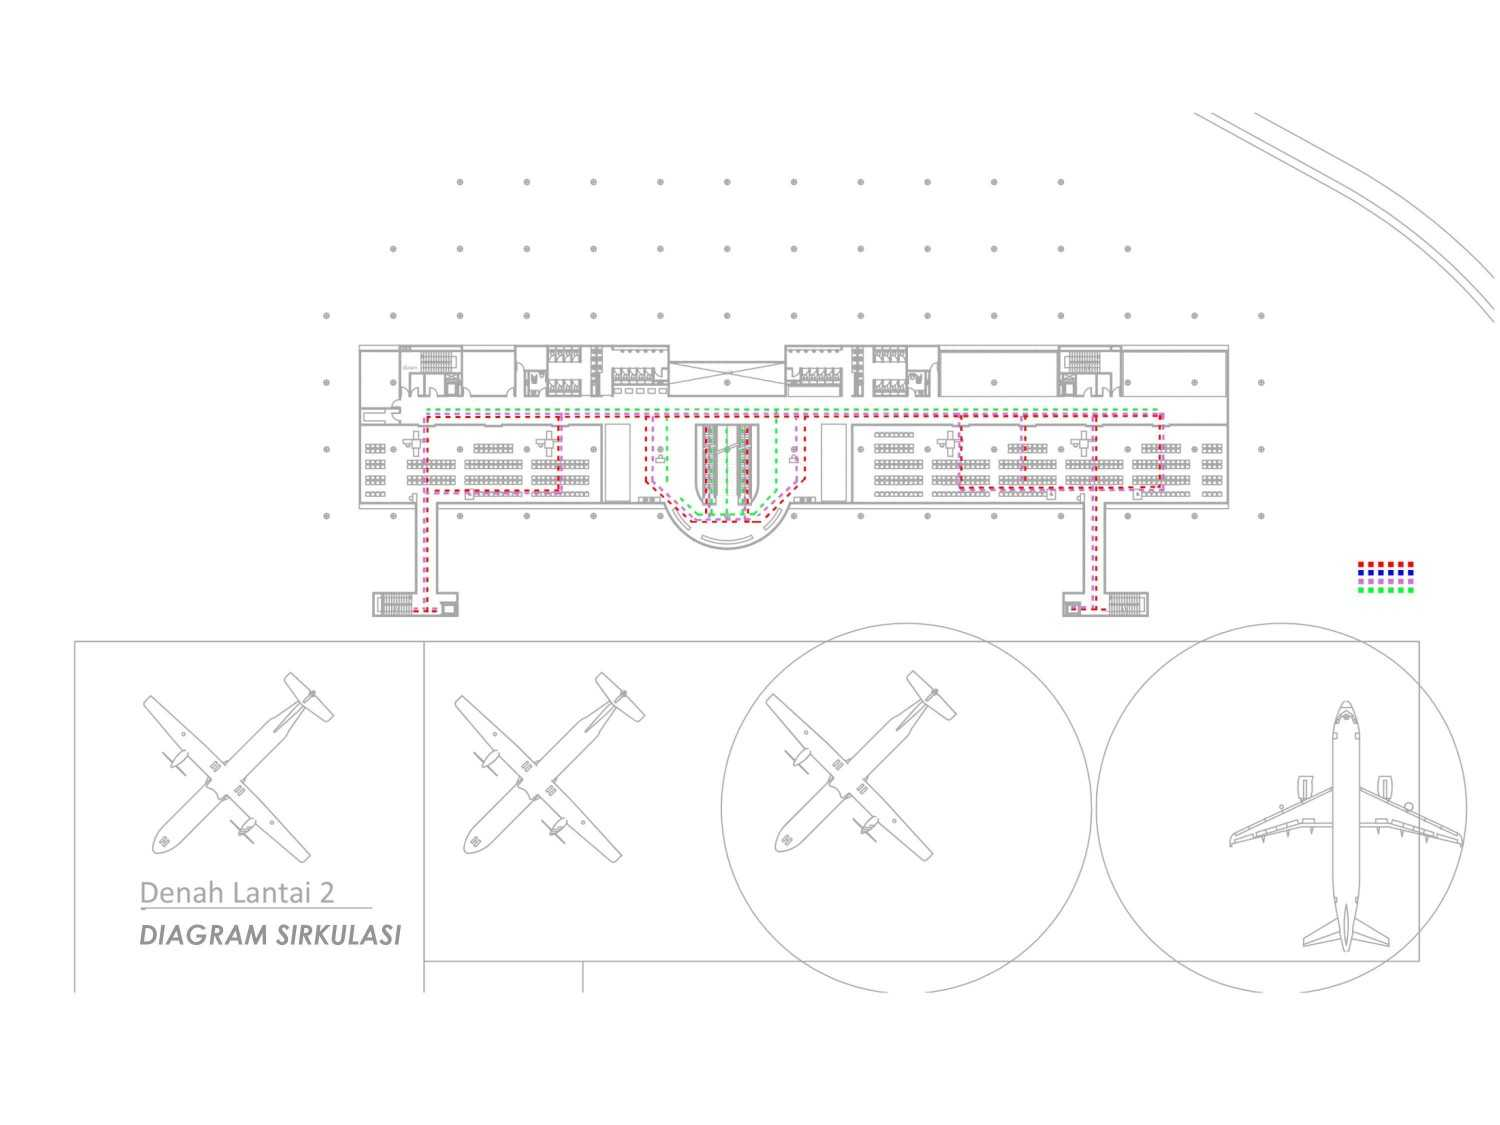 Monokroma Architect Mali Alor Airport  Alor, Ntt Alor, Ntt 10-Thermal-Analysis Kontemporer 14821